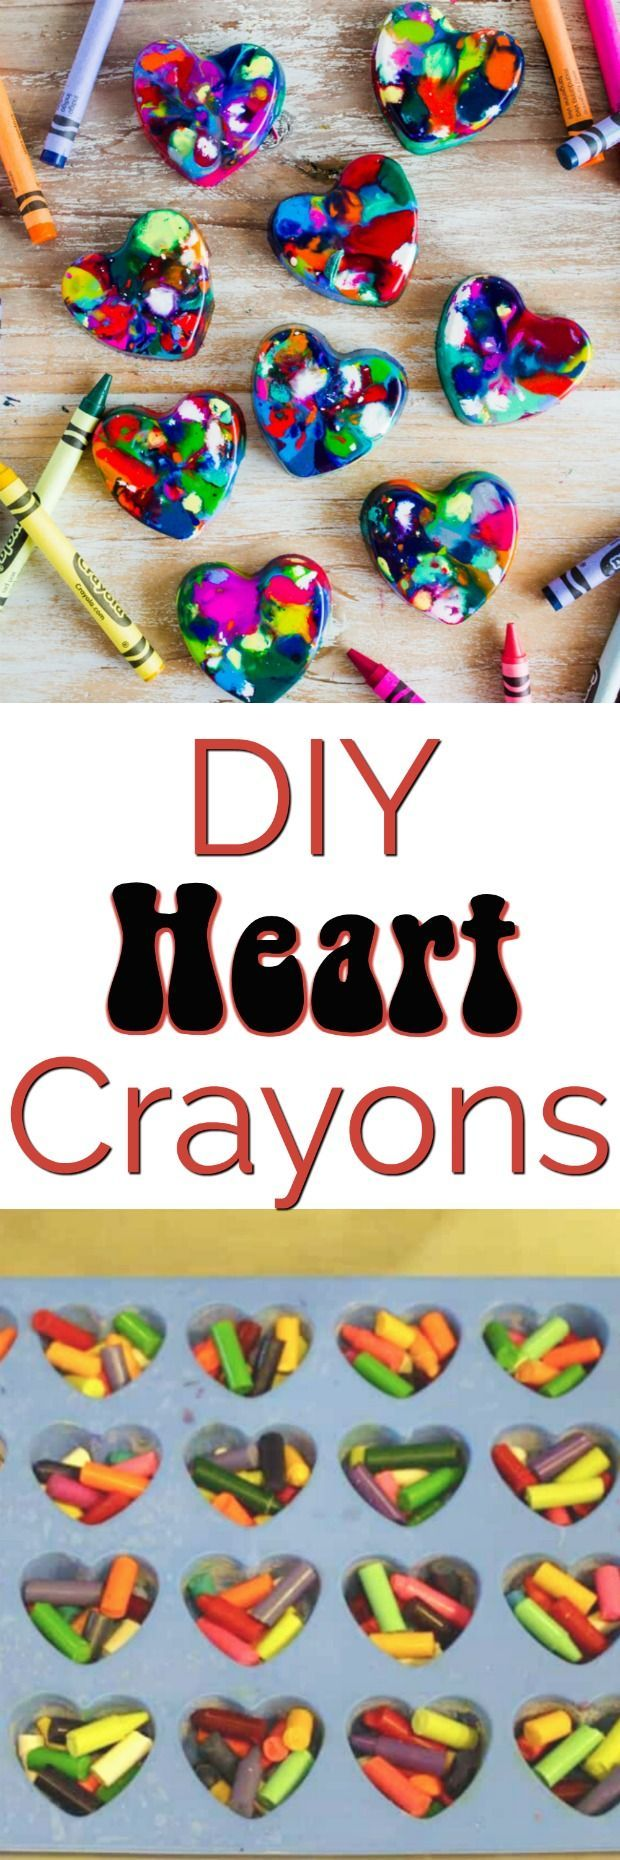 DIY Heart Crayons - the perfect homemade Valentine's Day project and gift to hand out at your child's classroom party  #valentinediy #noncandygift #partygift #crayon #easydiy #valentinesdaygiftideas